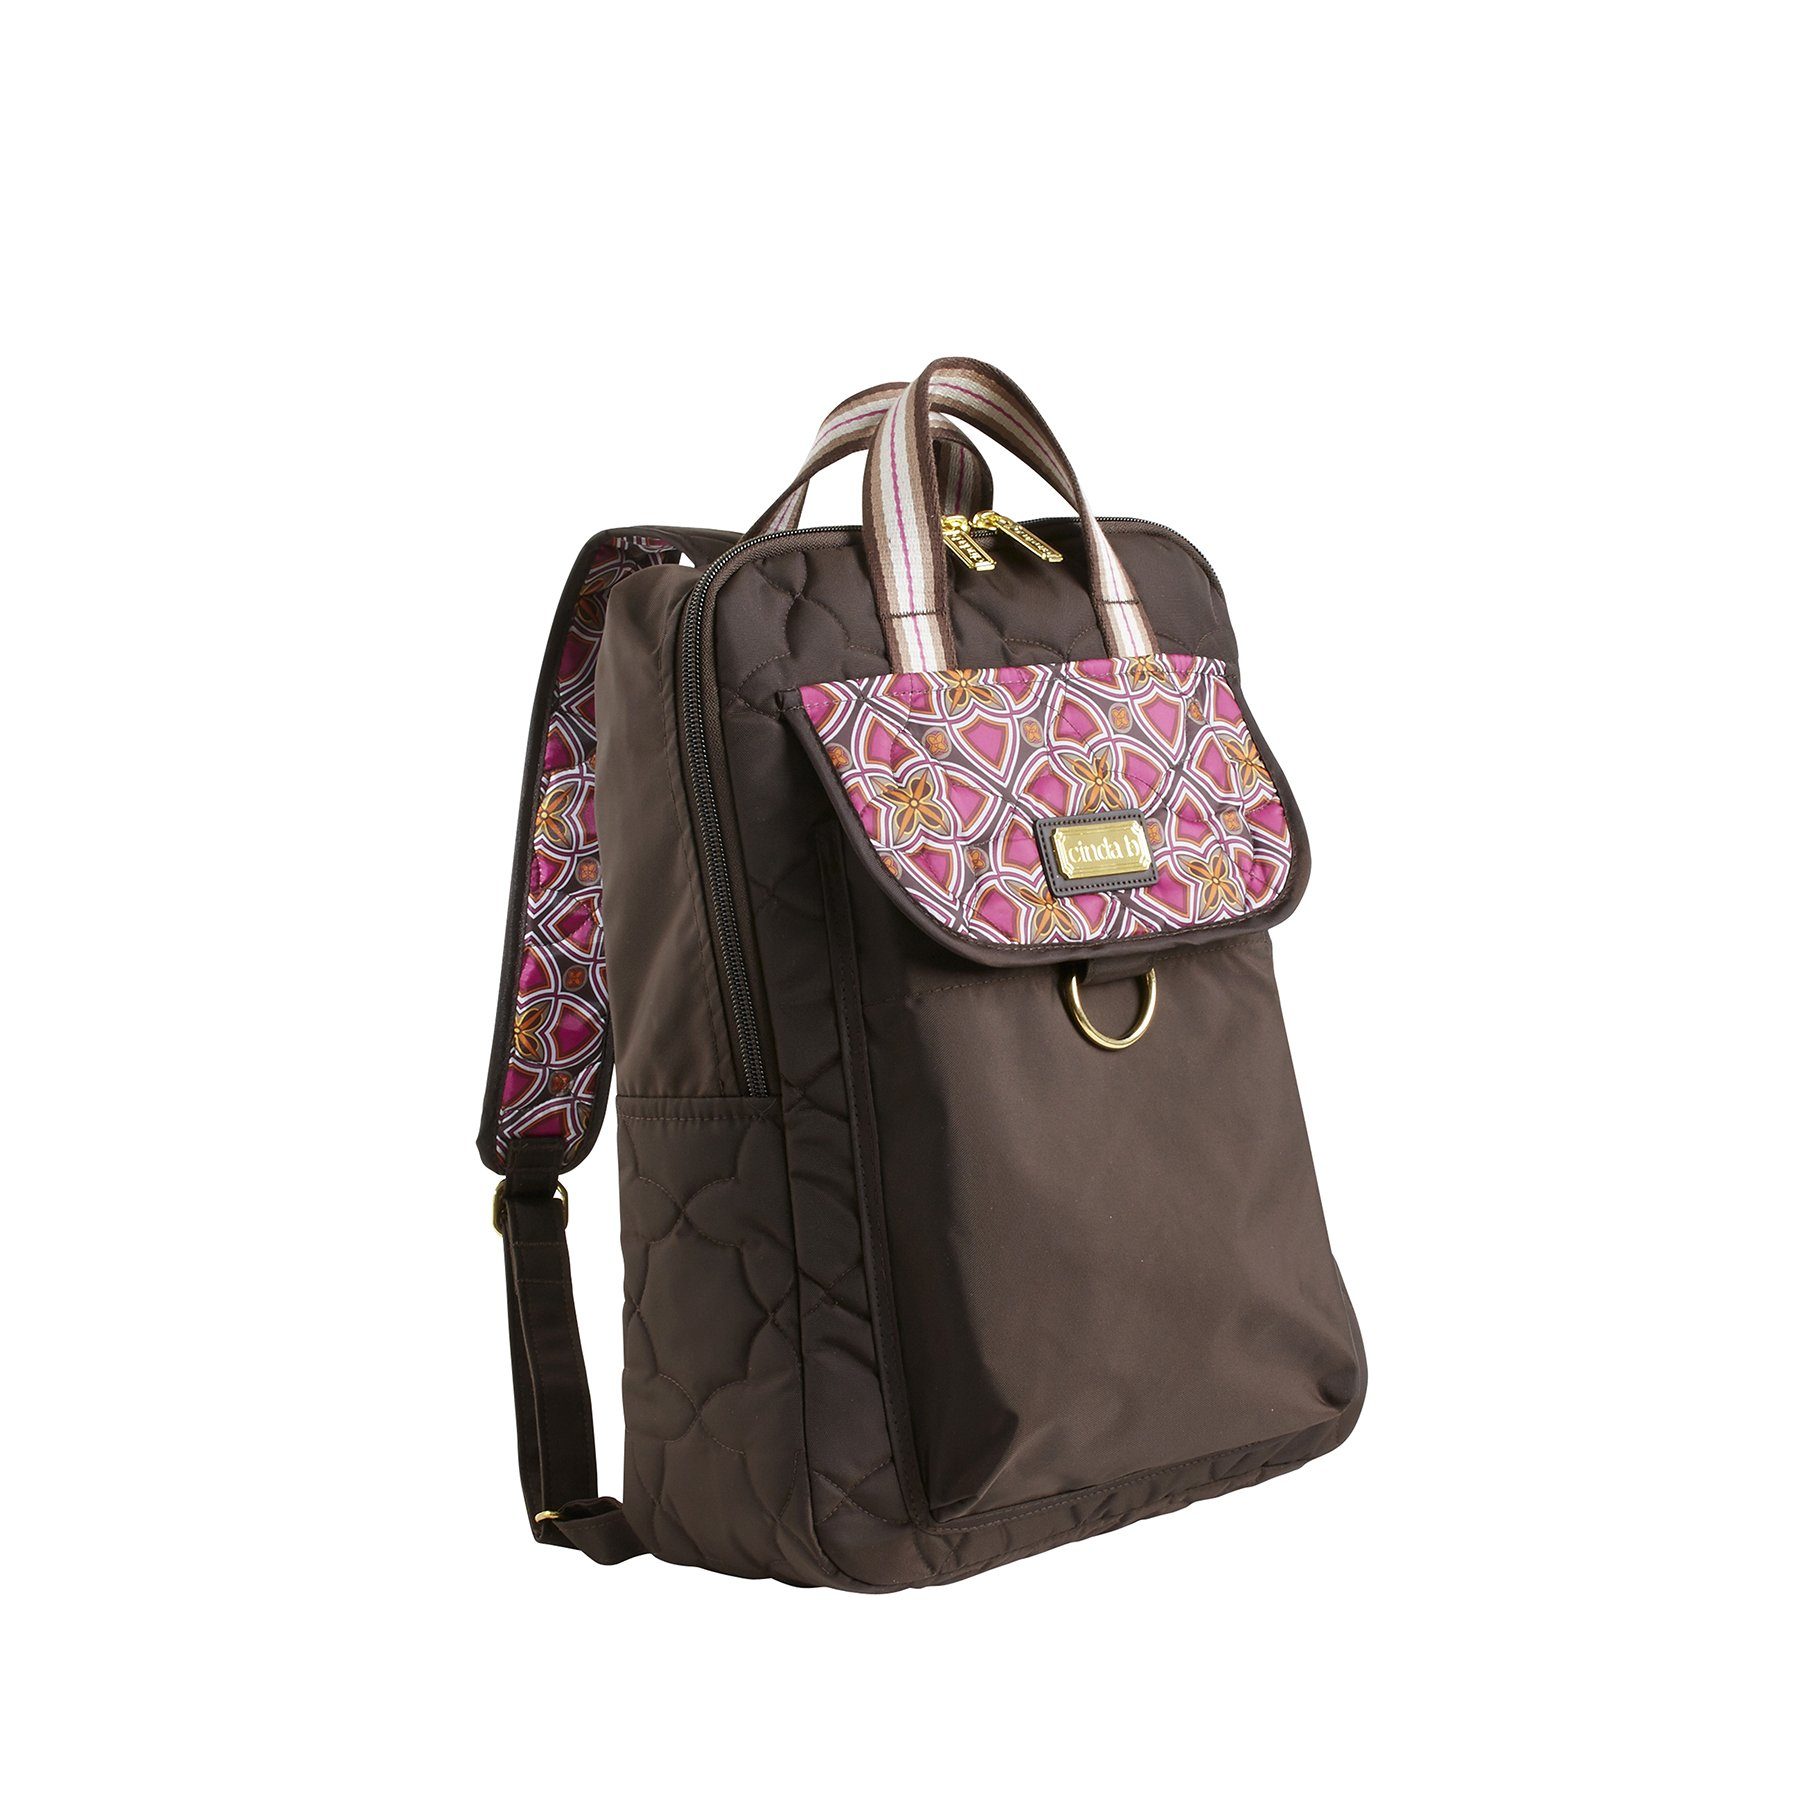 cinda b. City Backpack, Stained Glass, One Size